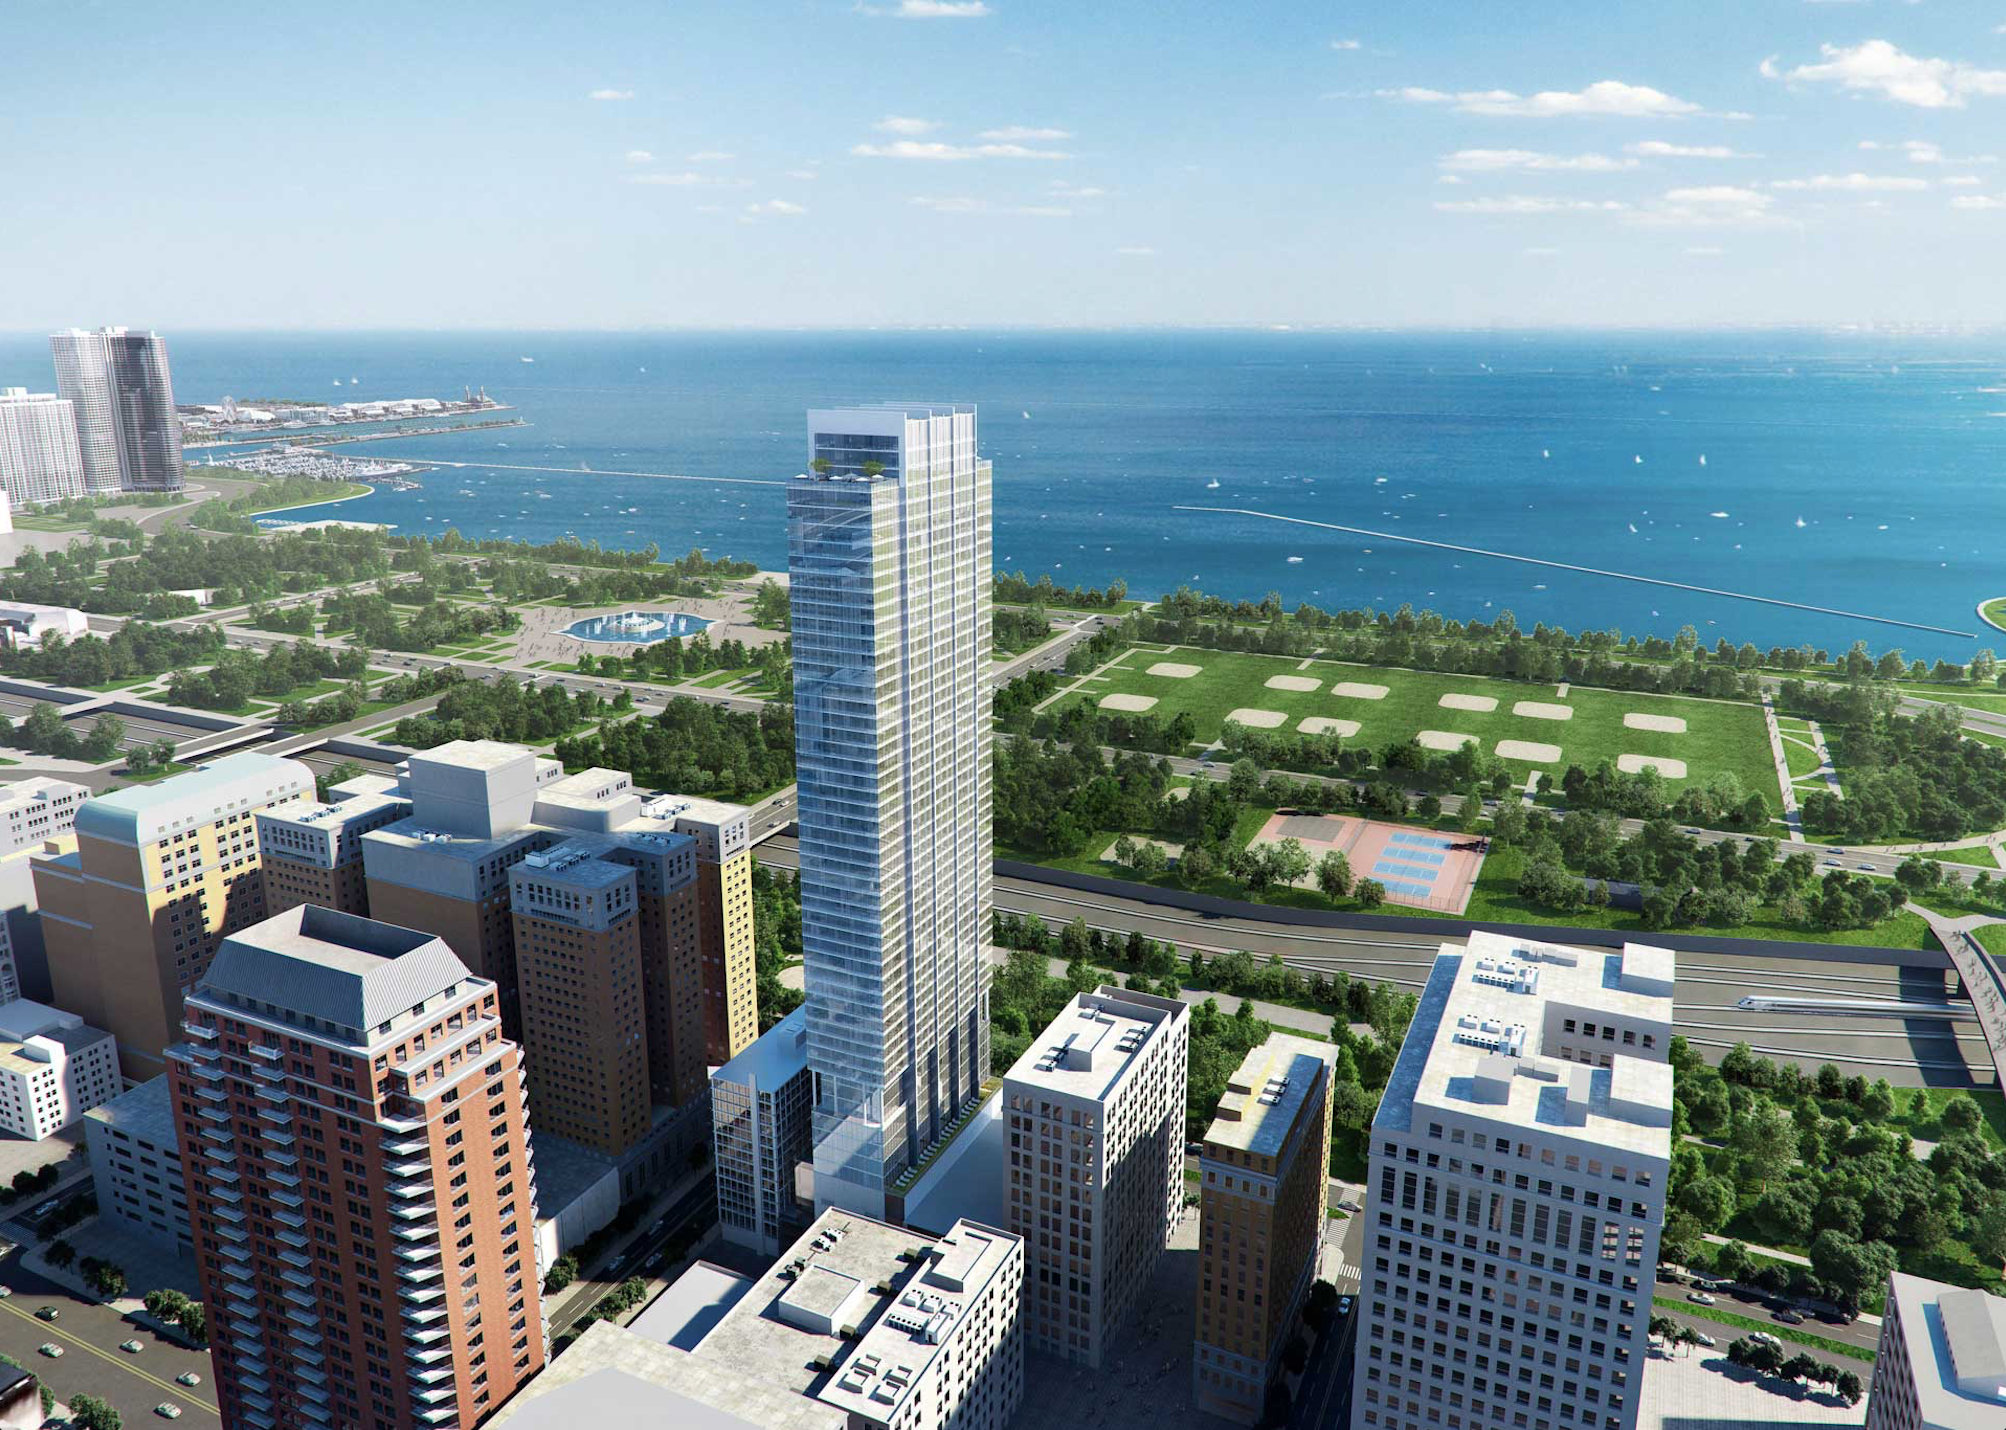 56 Story Michigan Avenue Tower Moves Forward With Images